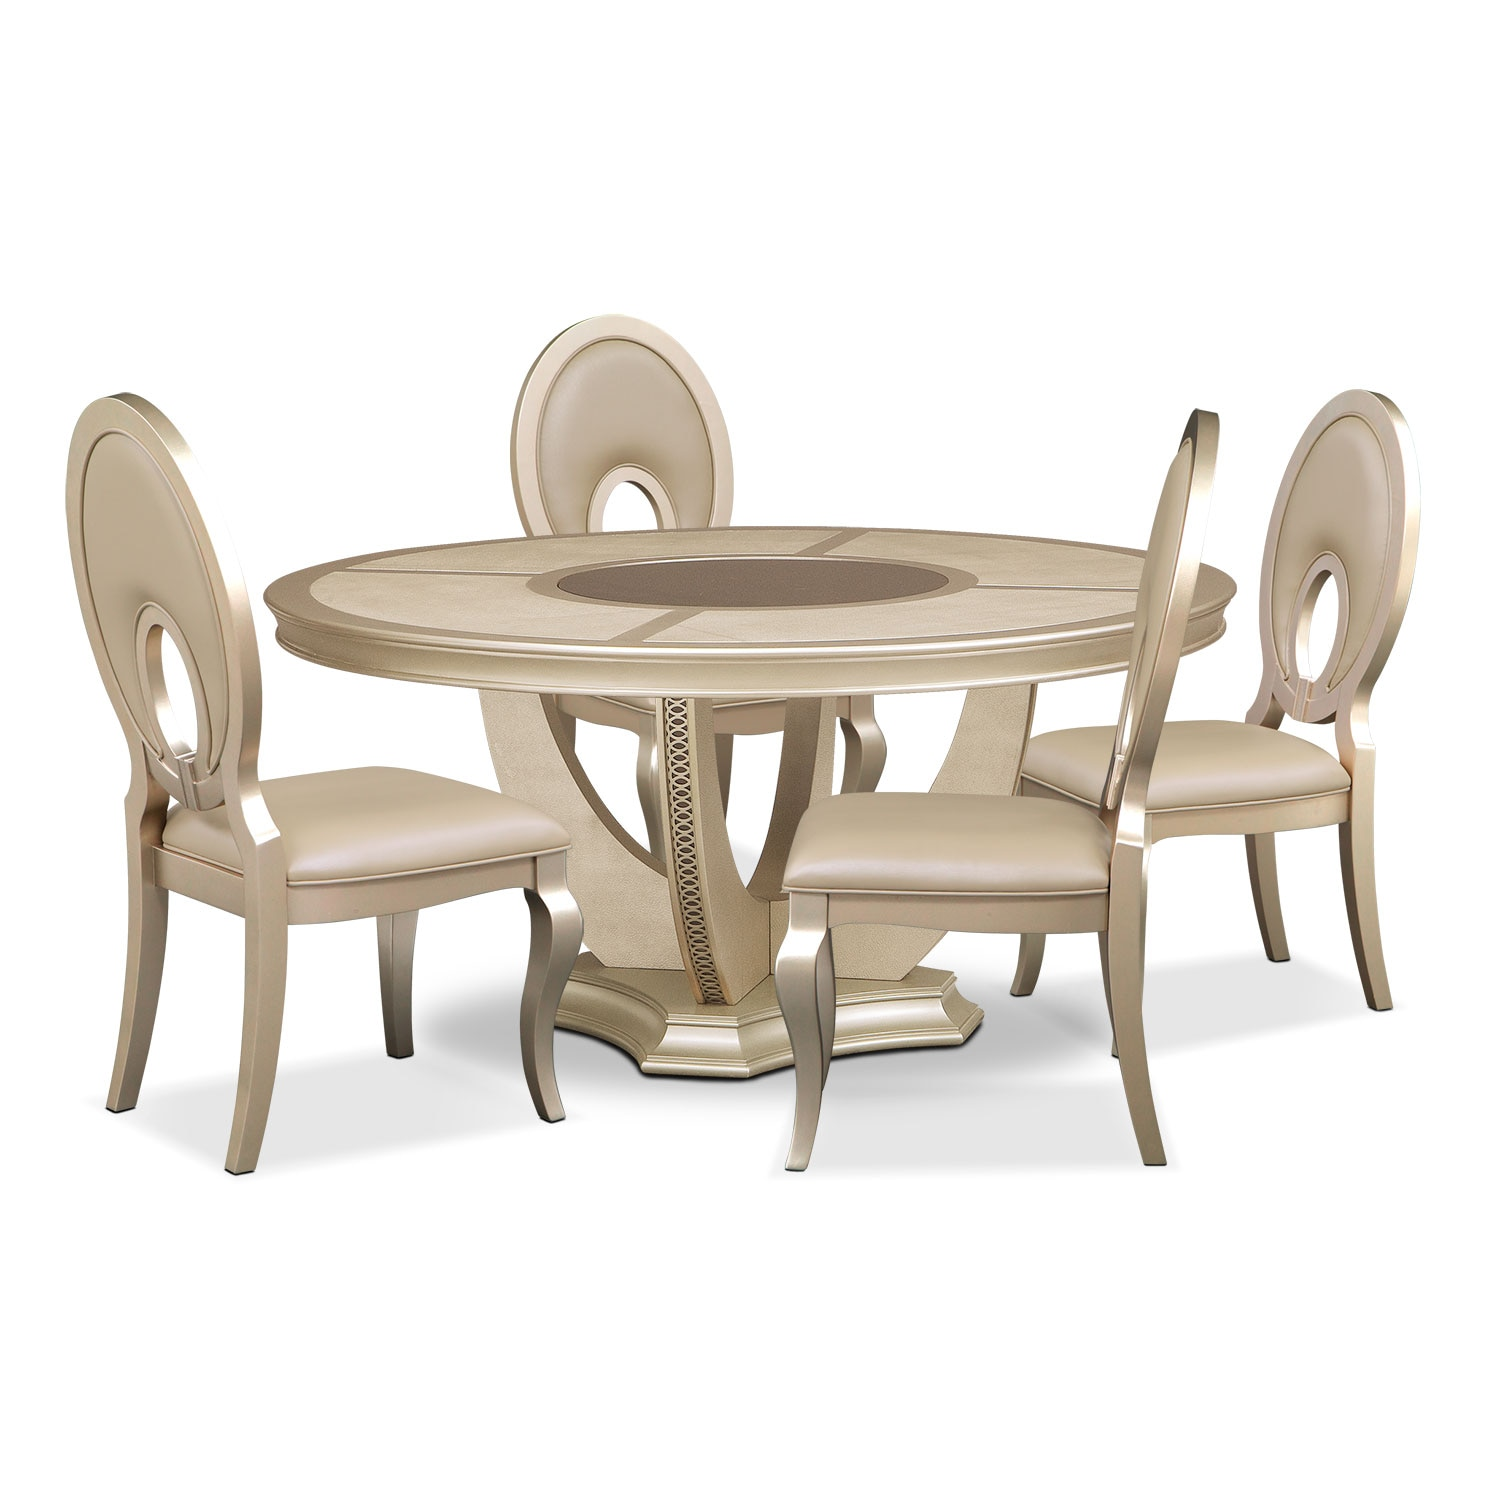 Allegro Round Table and 4 Chairs - Platinum